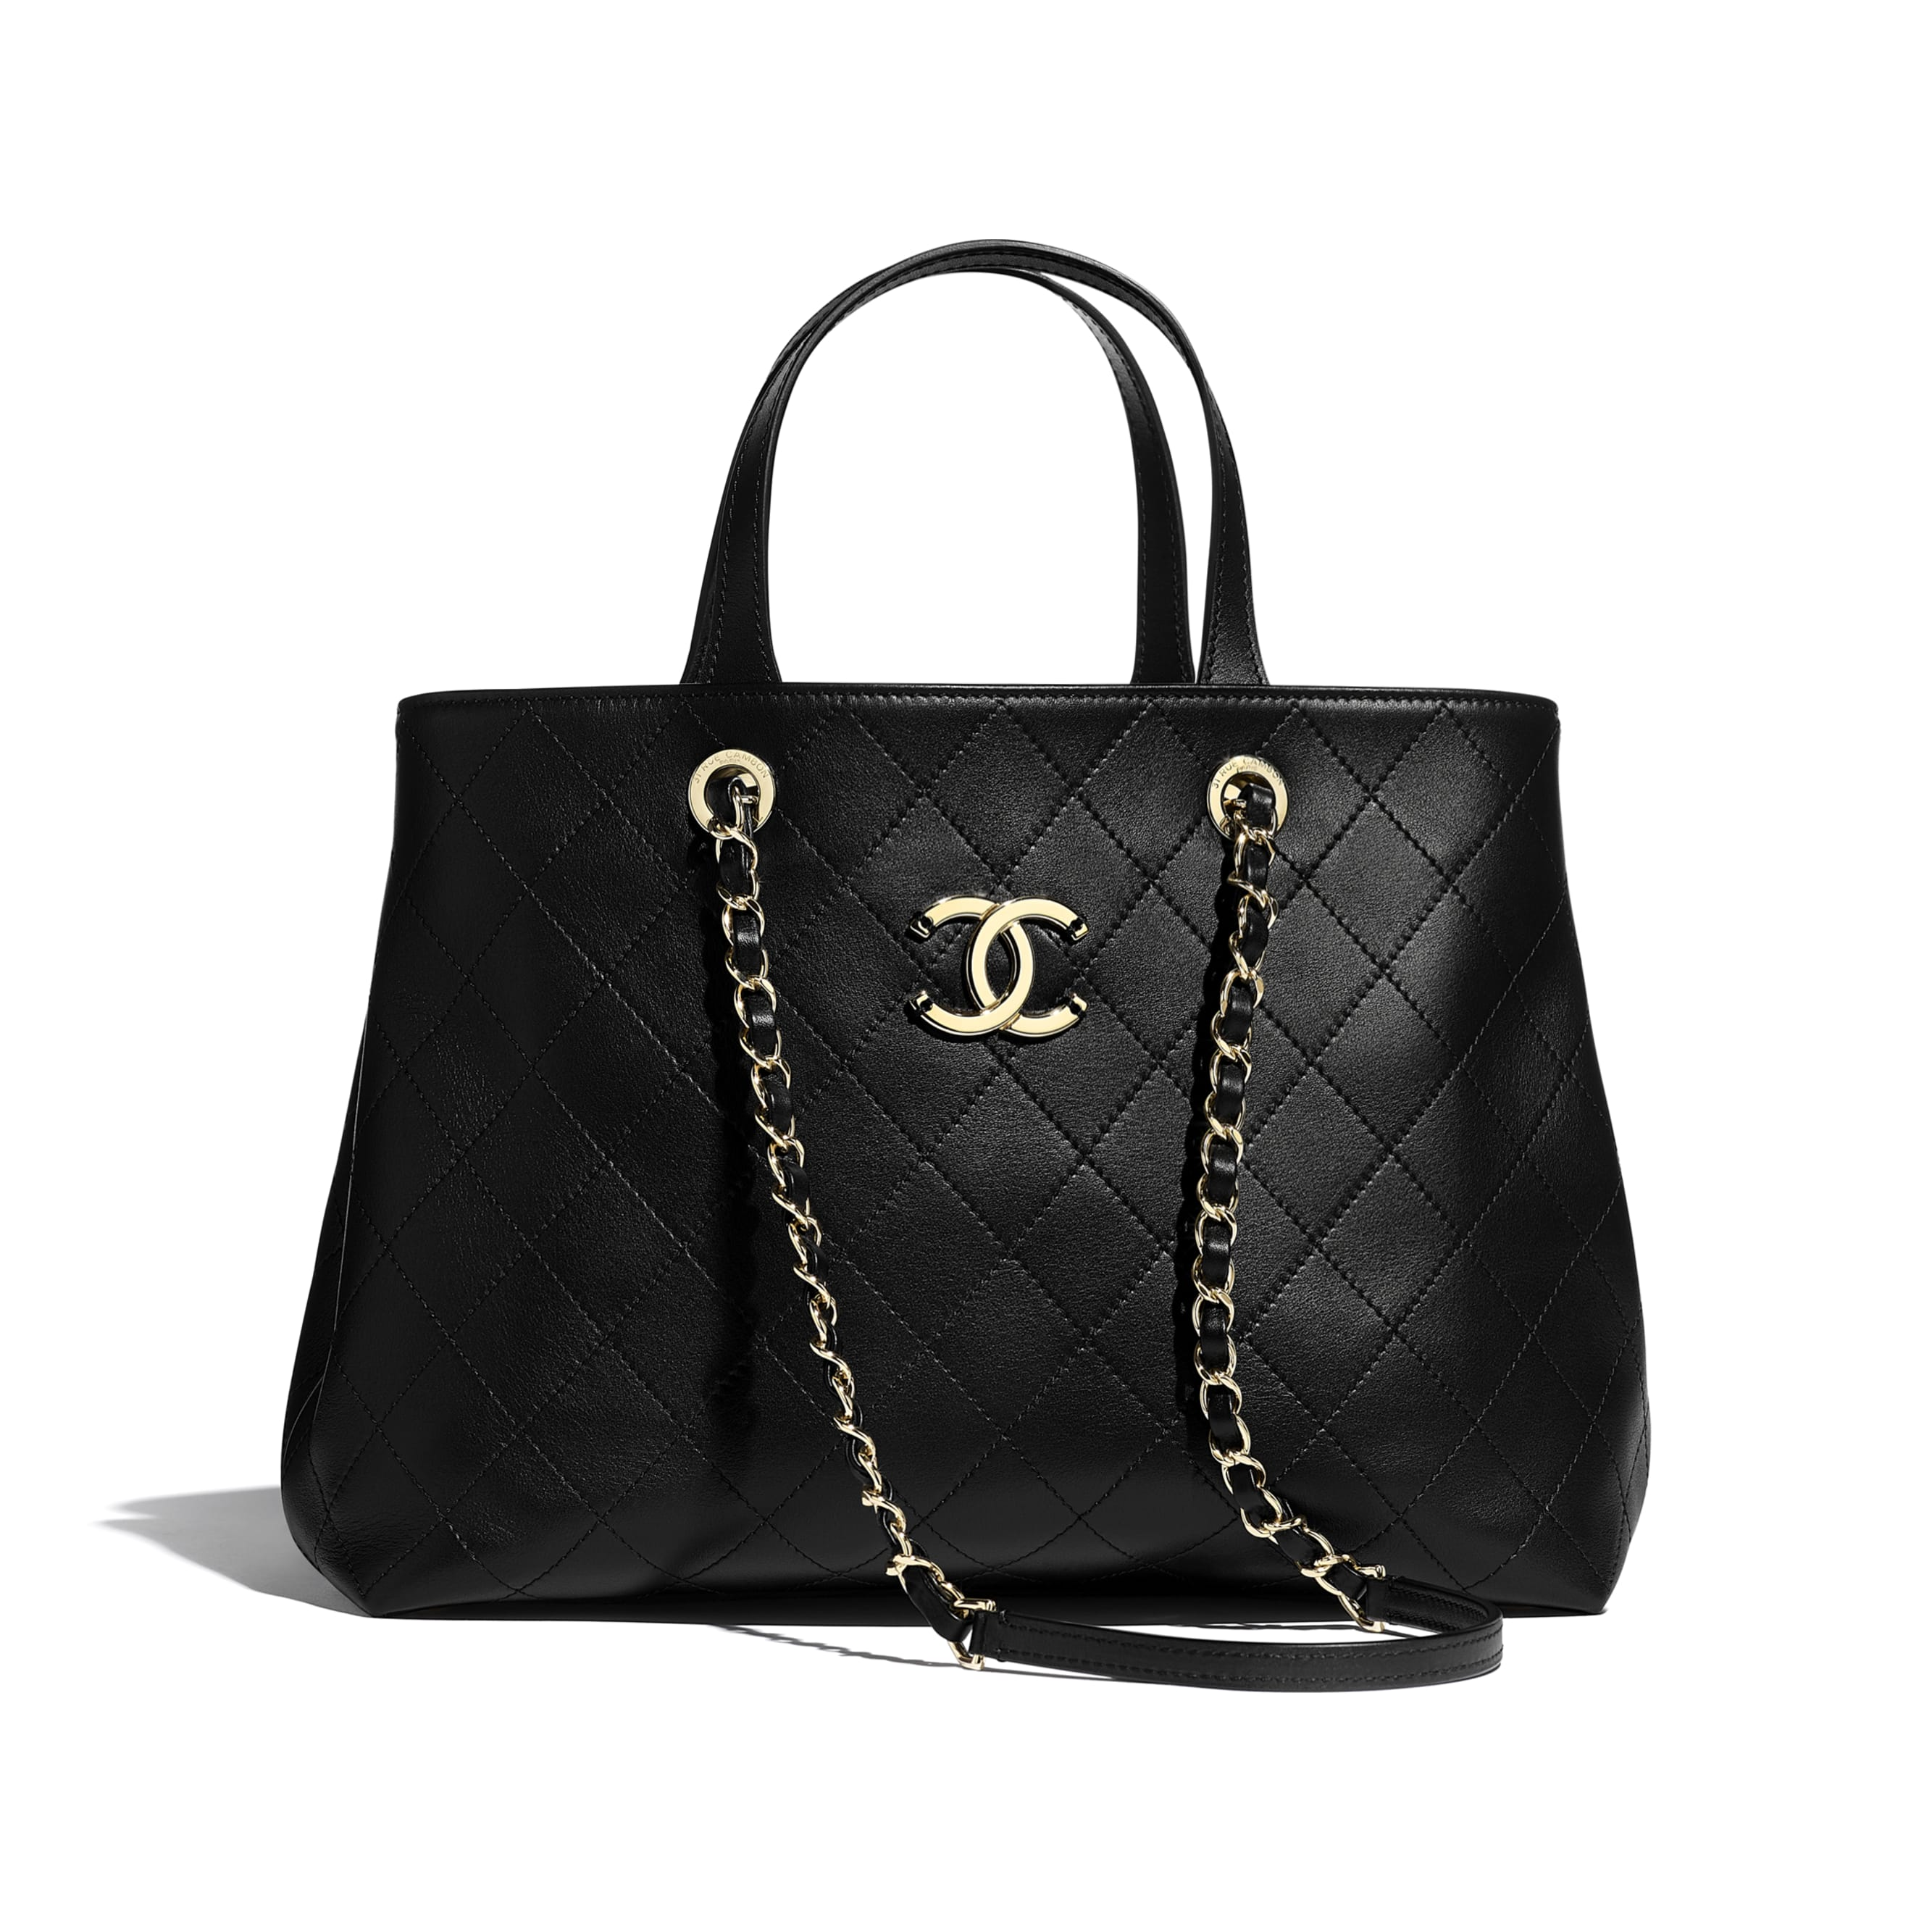 Small Shopping Bag - Black - Calfskin & Gold-Tone Metal - CHANEL - Default view - see standard sized version